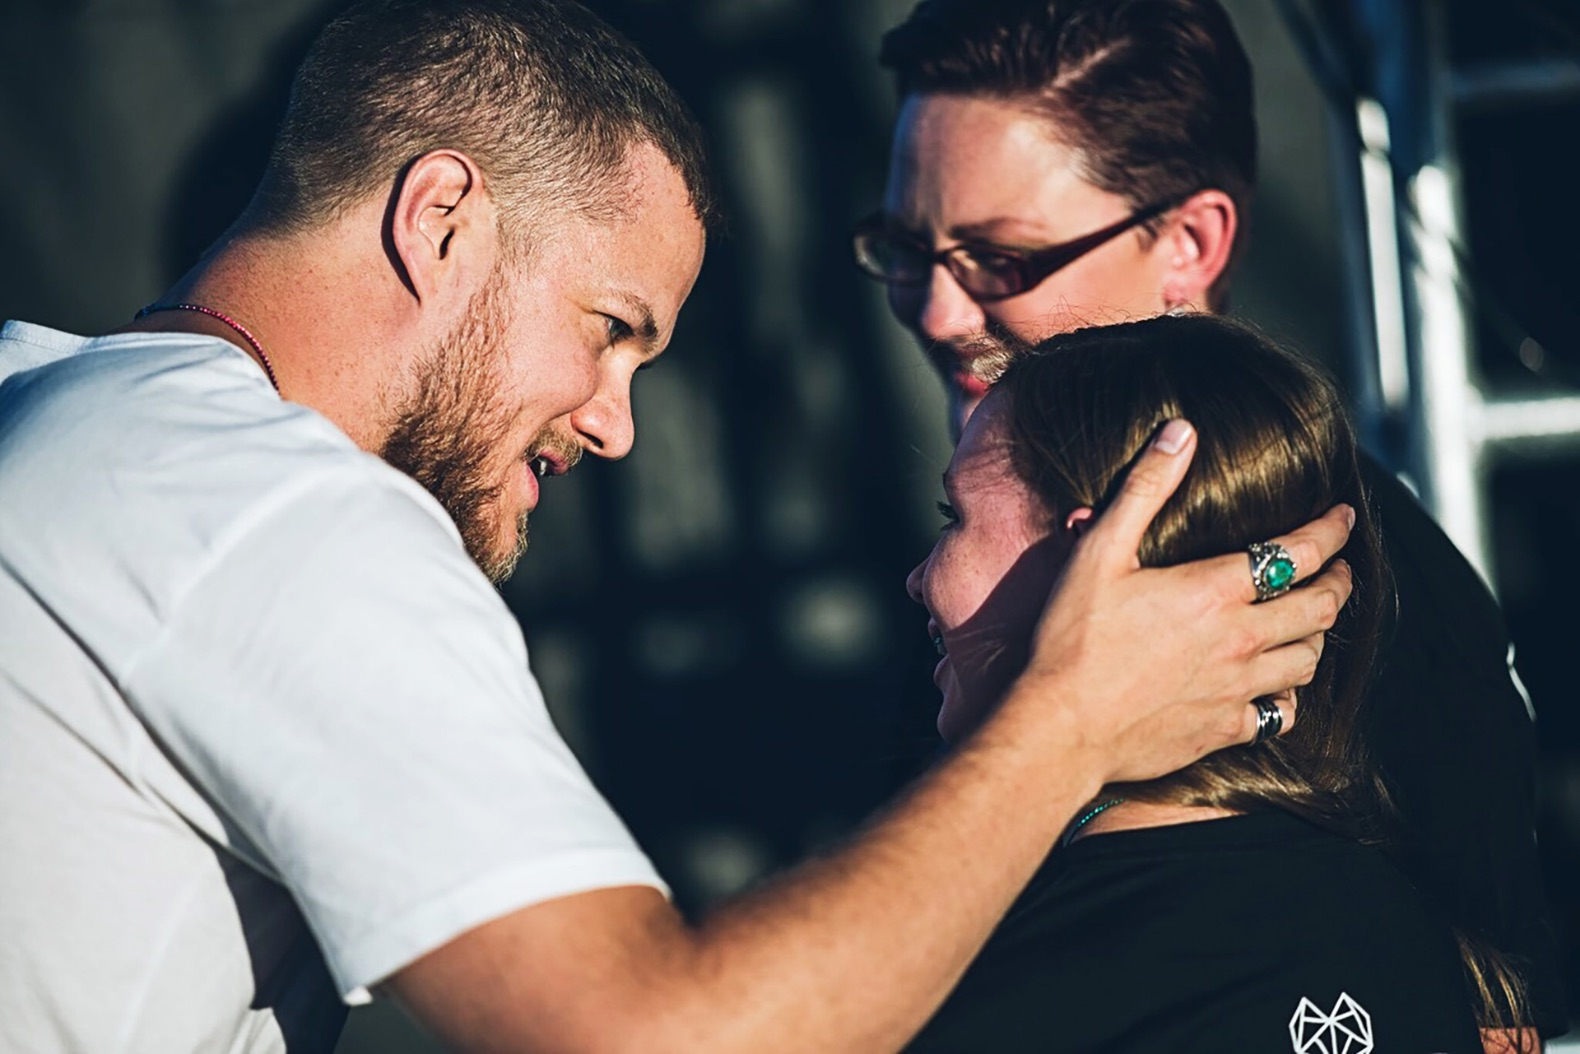 Dan Reynolds greets one of the speakers and her mother at the 2017 LoveLoud Festival in Orem, Utah./Photo courtesy of HBO.